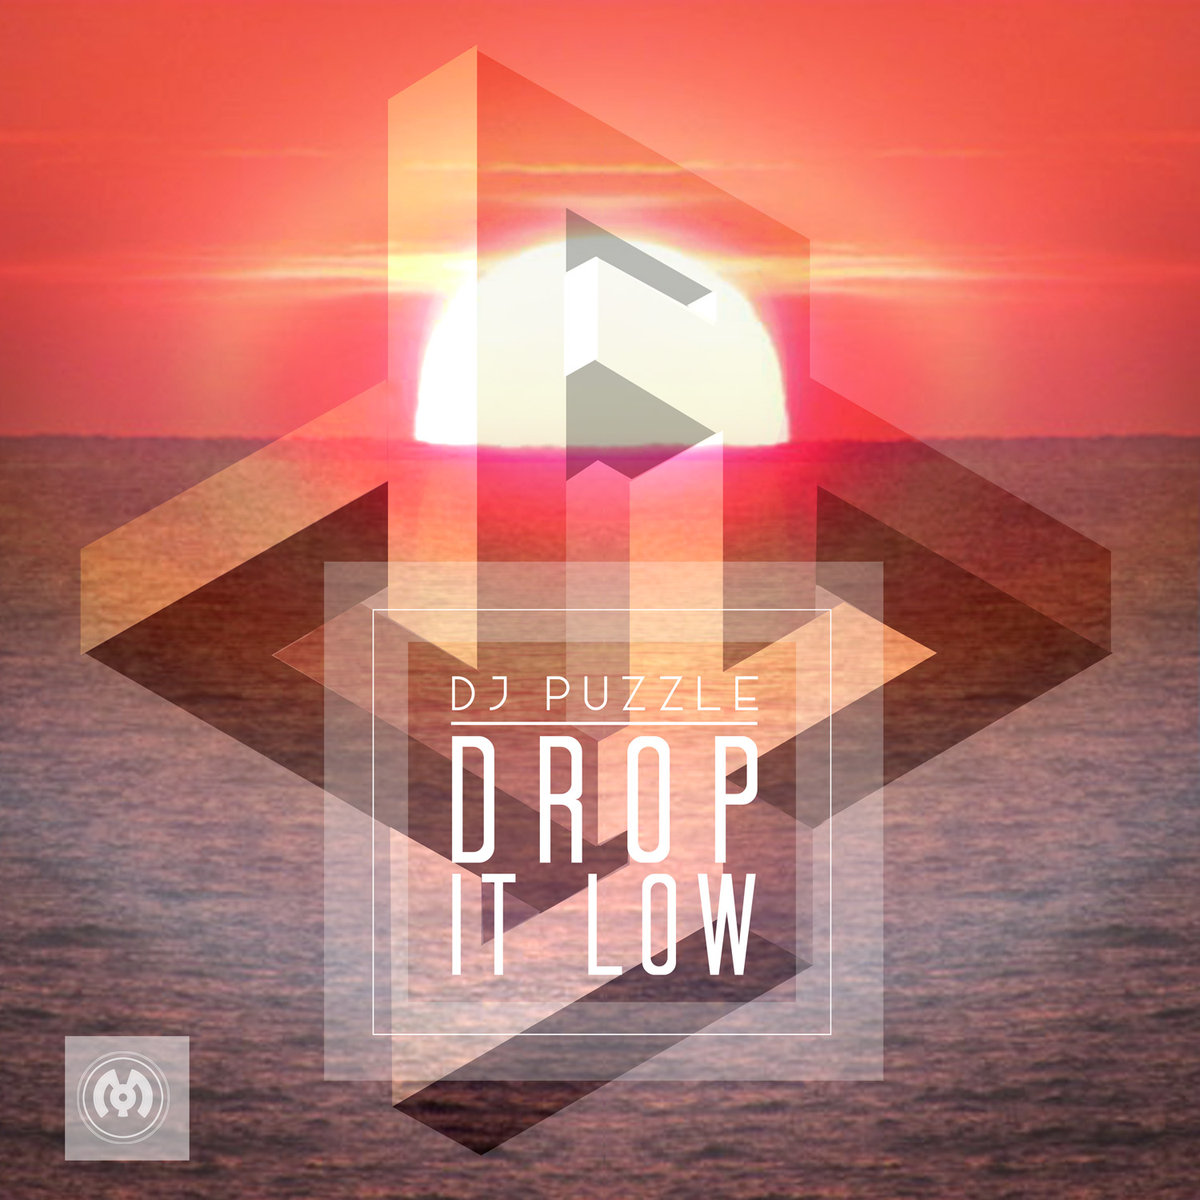 DJ Puzzle - Drop It Low (artwork)